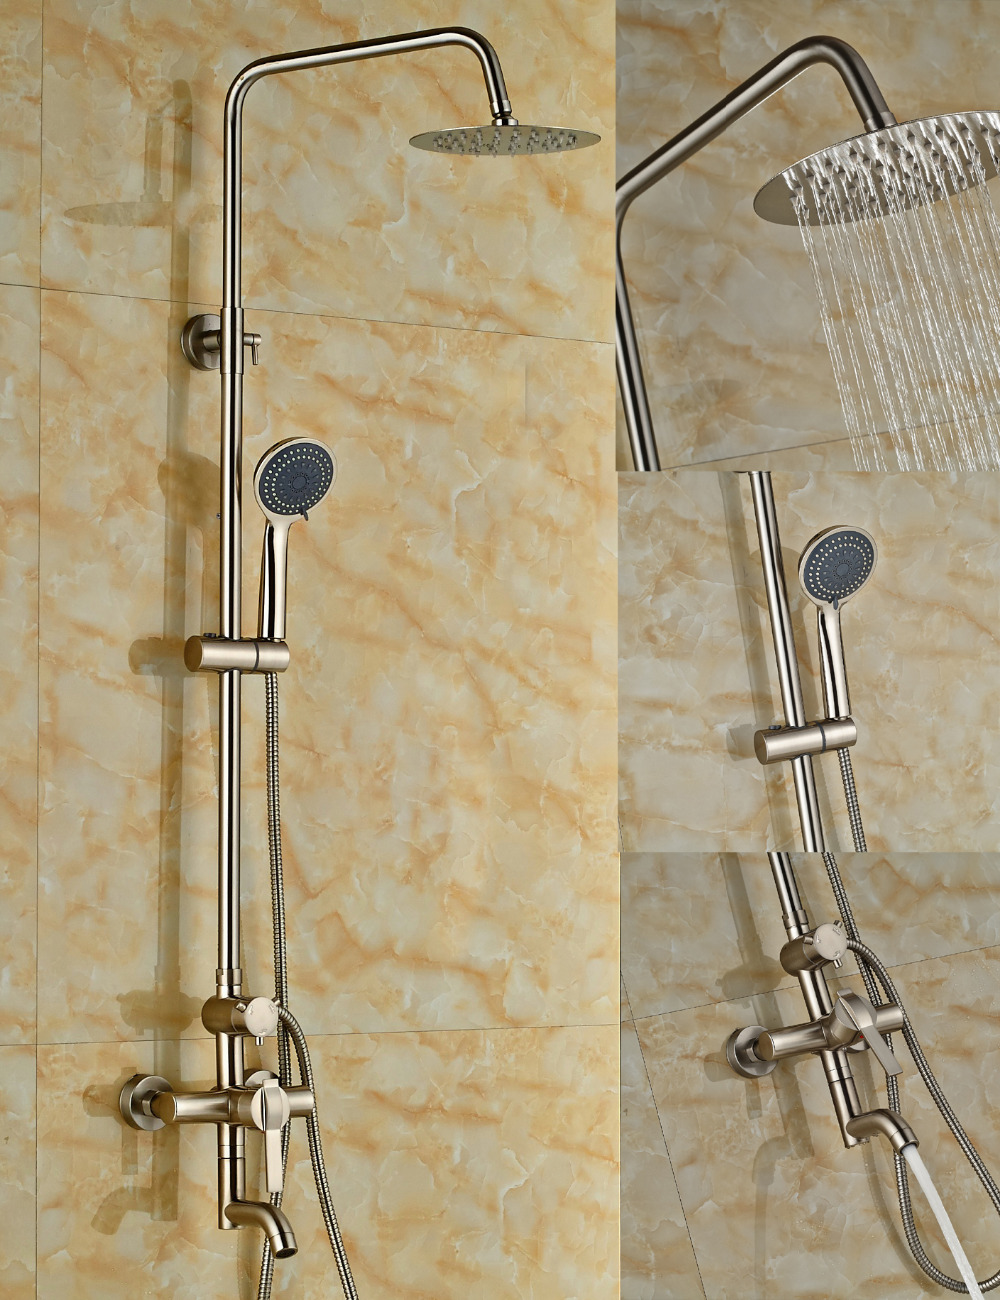 Wholesale And Retail Luxury Nickel Brushed 8 Brass Rain Shower Head Faucet Swivel Spout Mixer Tap W/ Hand Sprayer